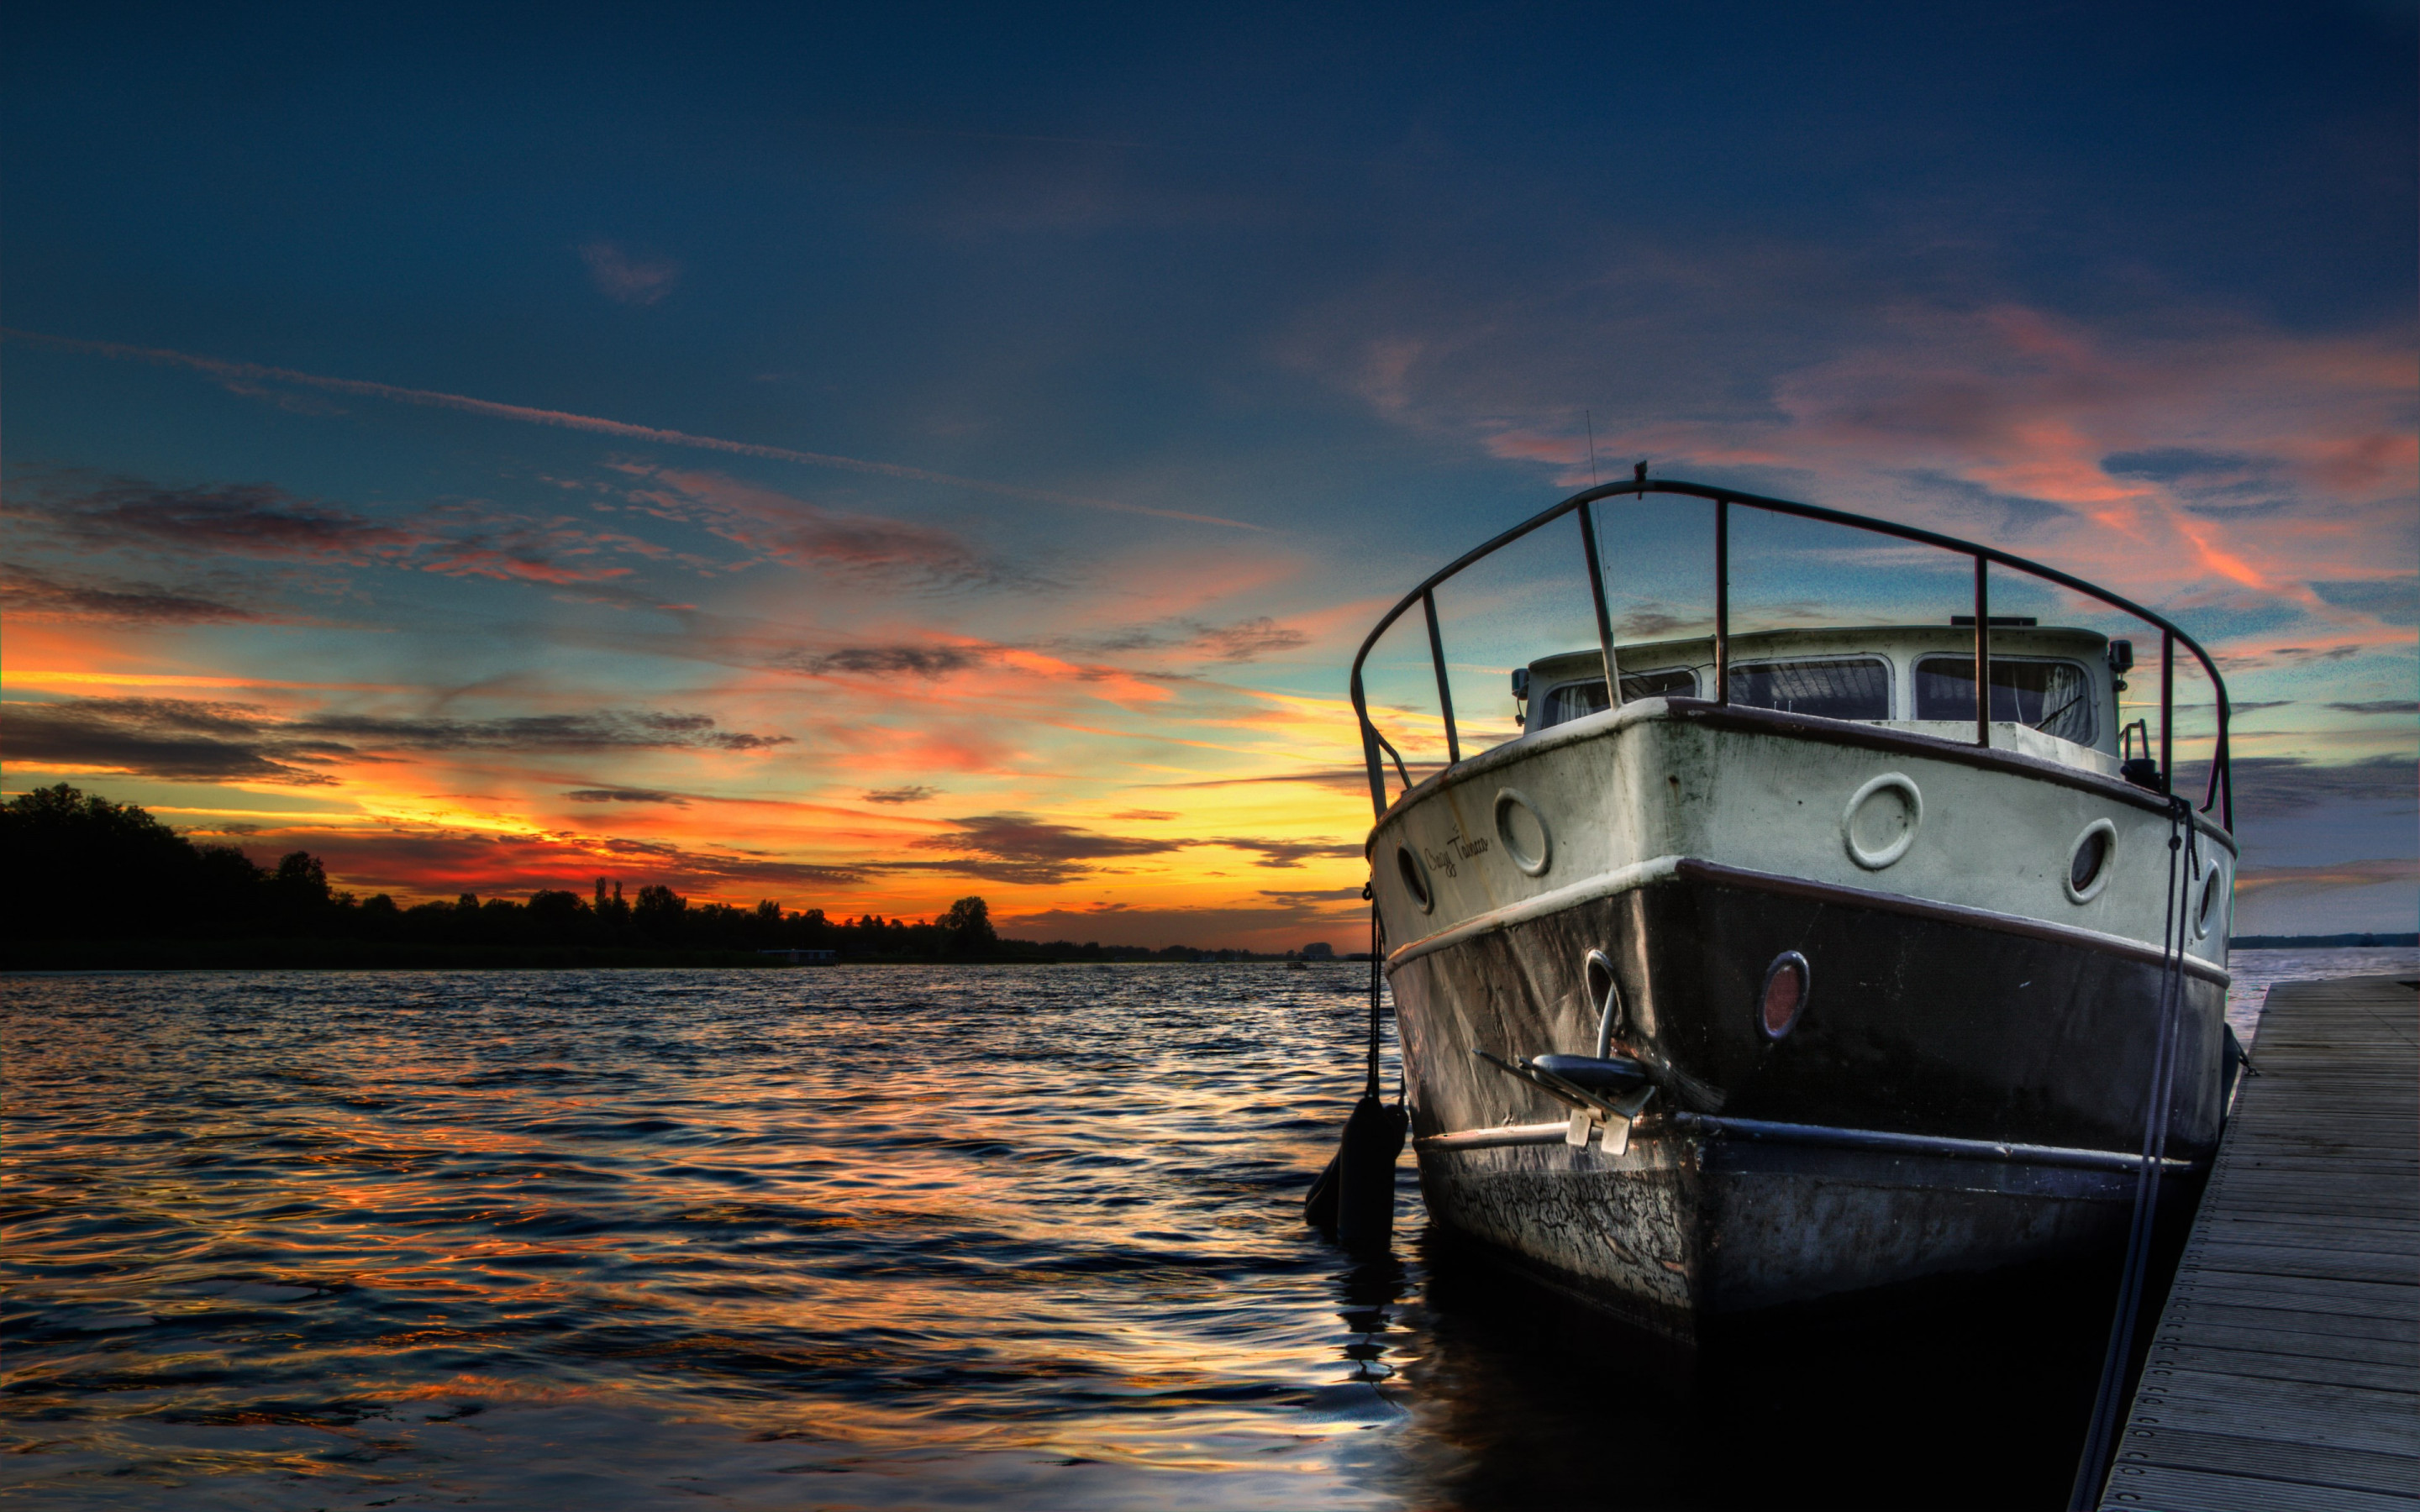 Boat and sunset in background | 2880x1800 wallpaper